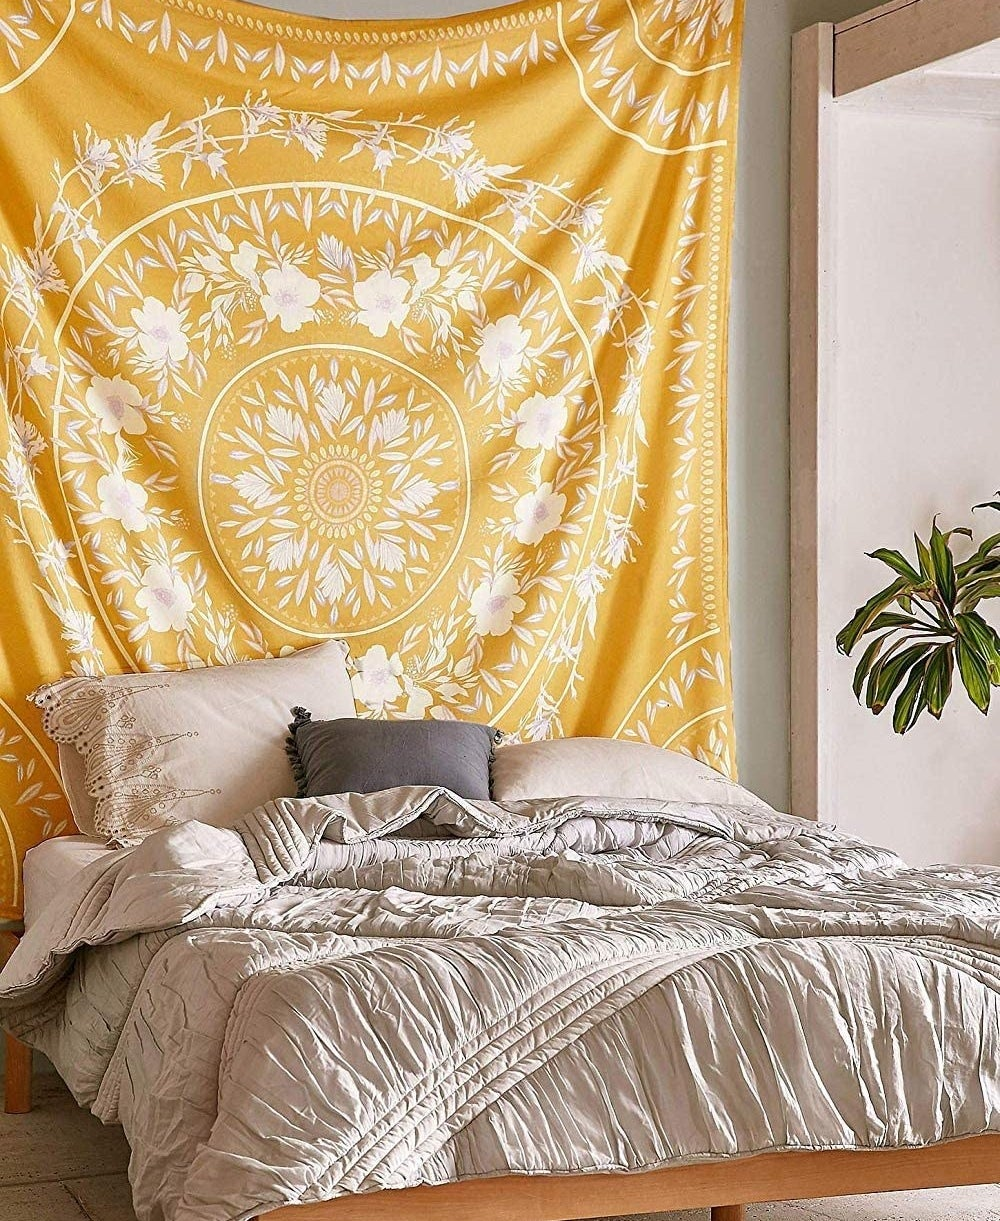 The tapestry behind a bed